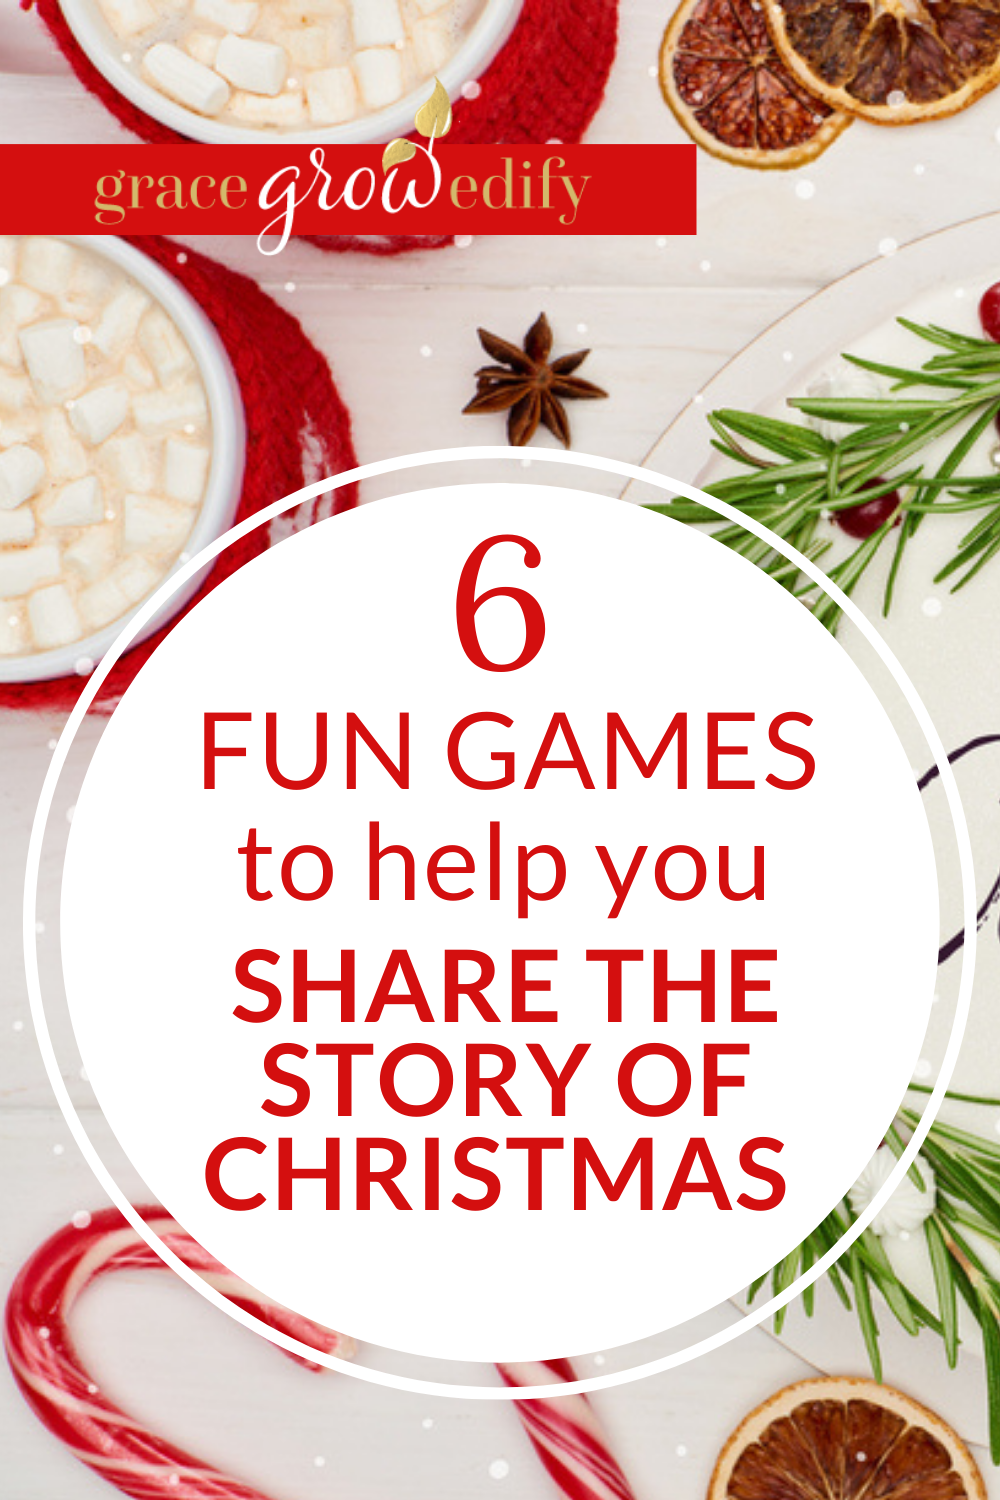 6 Fun Games to Help You Share the Story of Christmas